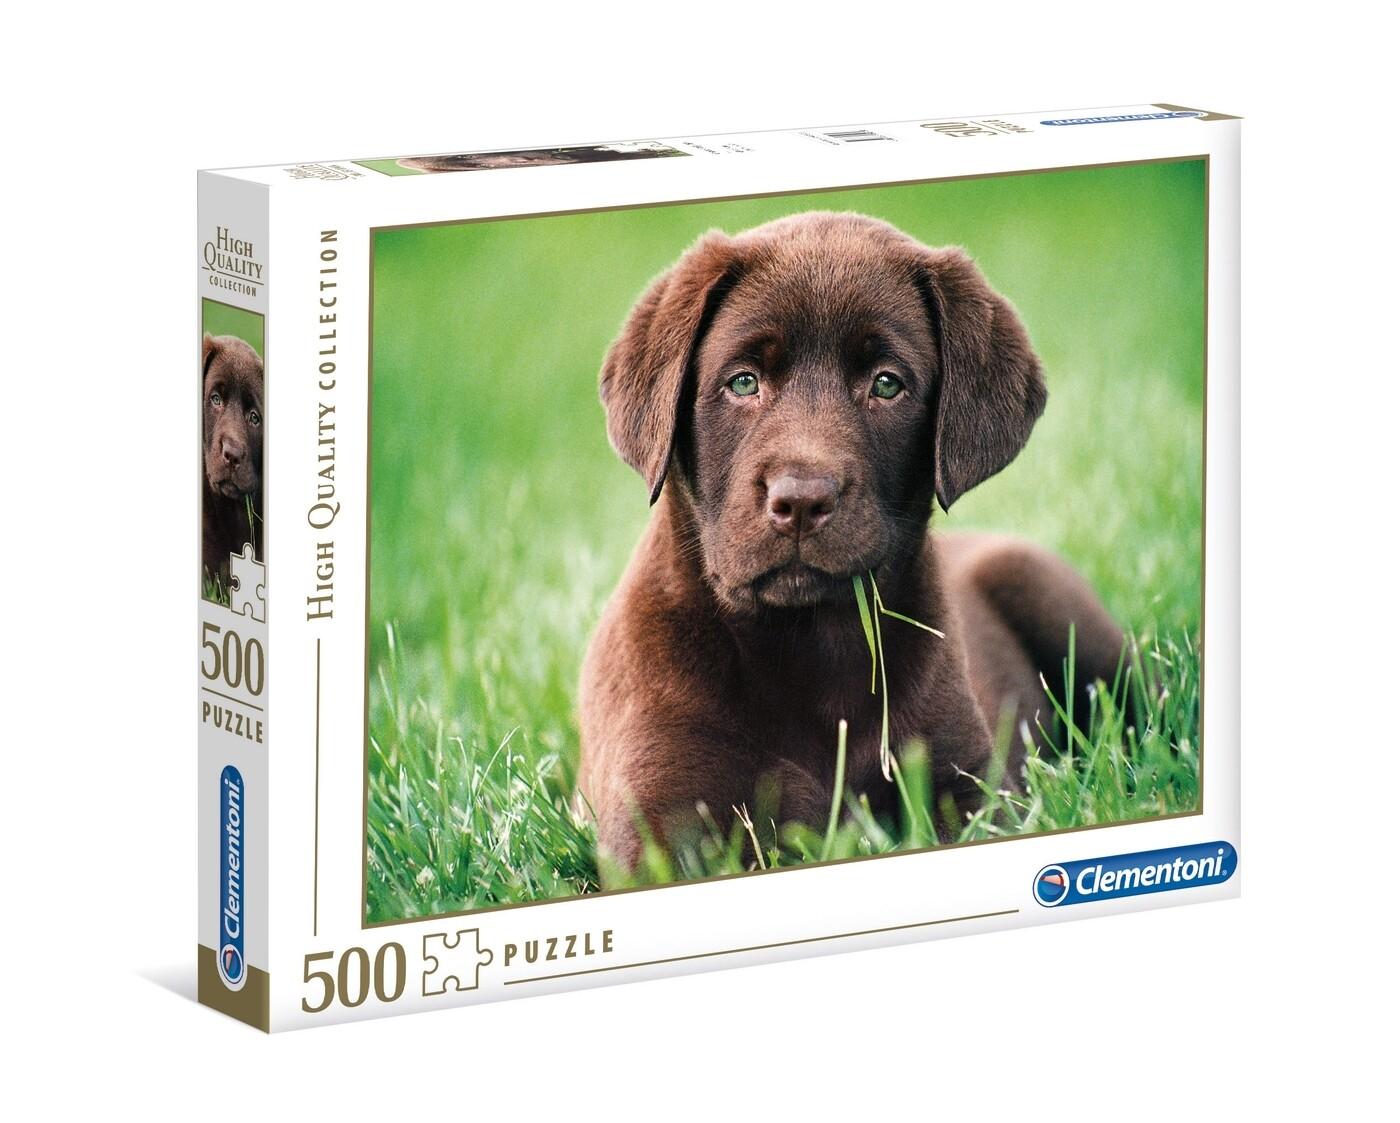 PUZZLE 500 HQ Chocolate Puppy - CLEMENTONI